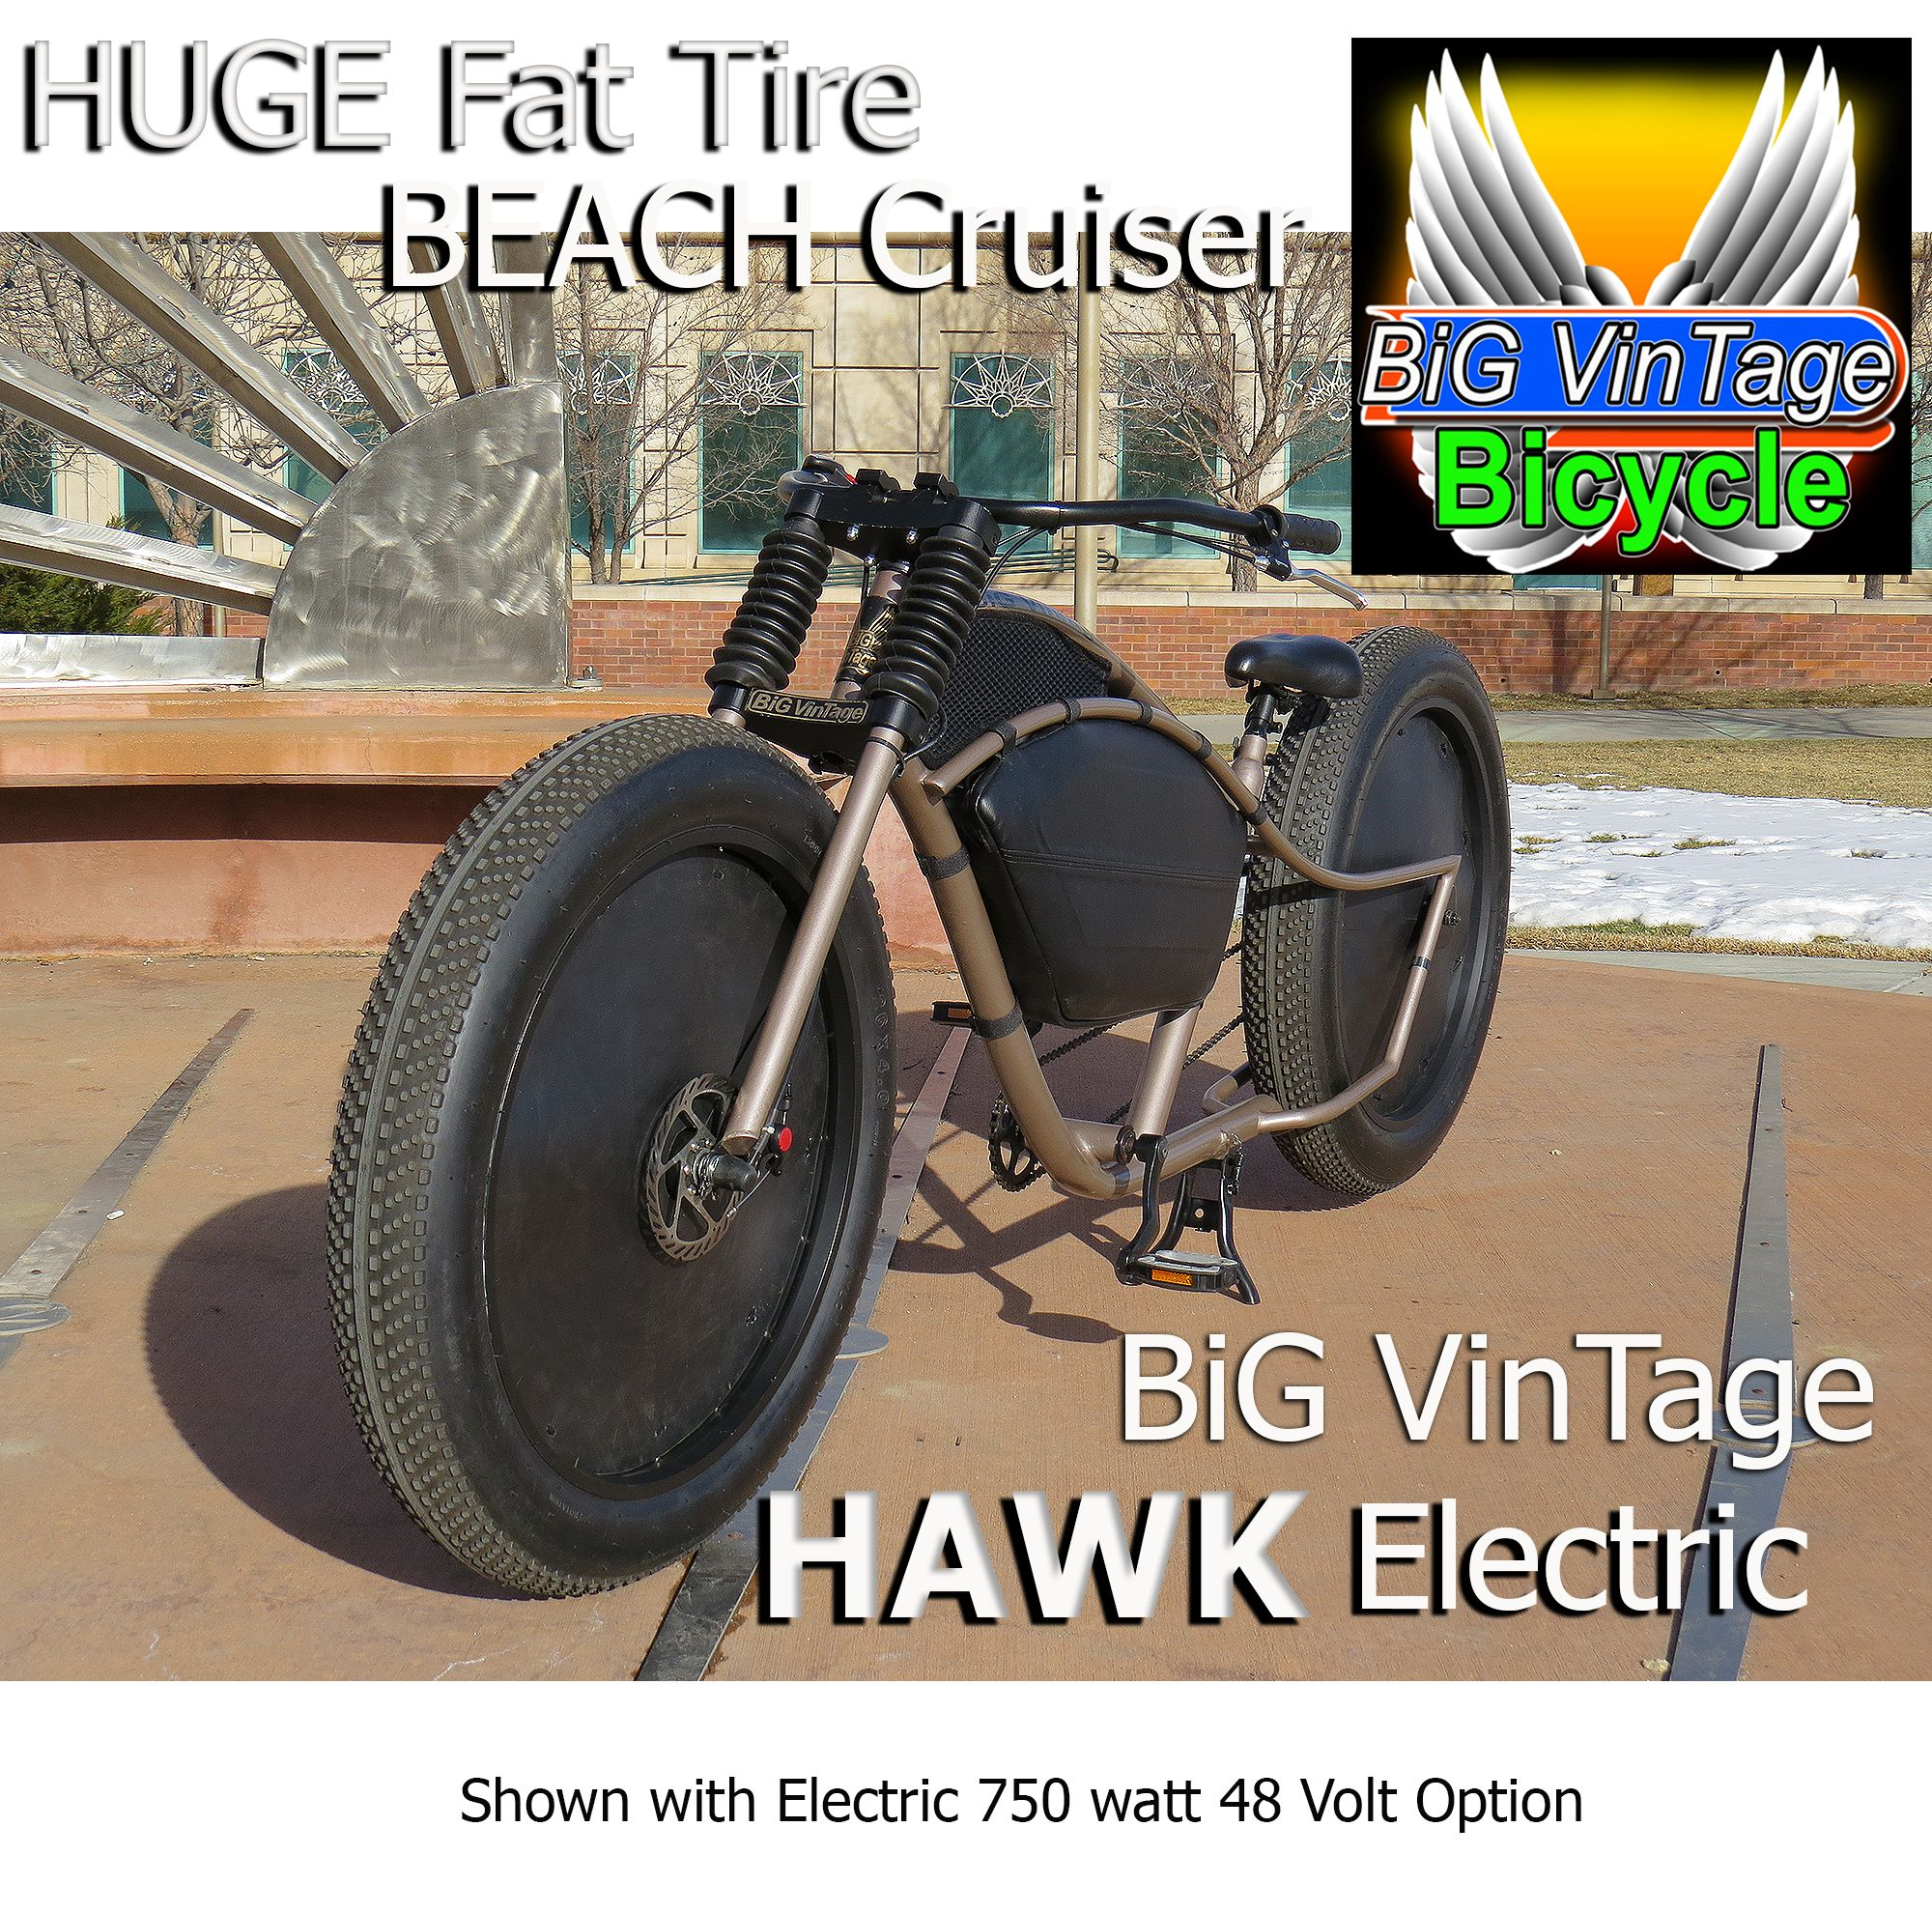 BVB HAWK Electric 750W 48V Big Vintage Bicycle makes These huge Fat ...